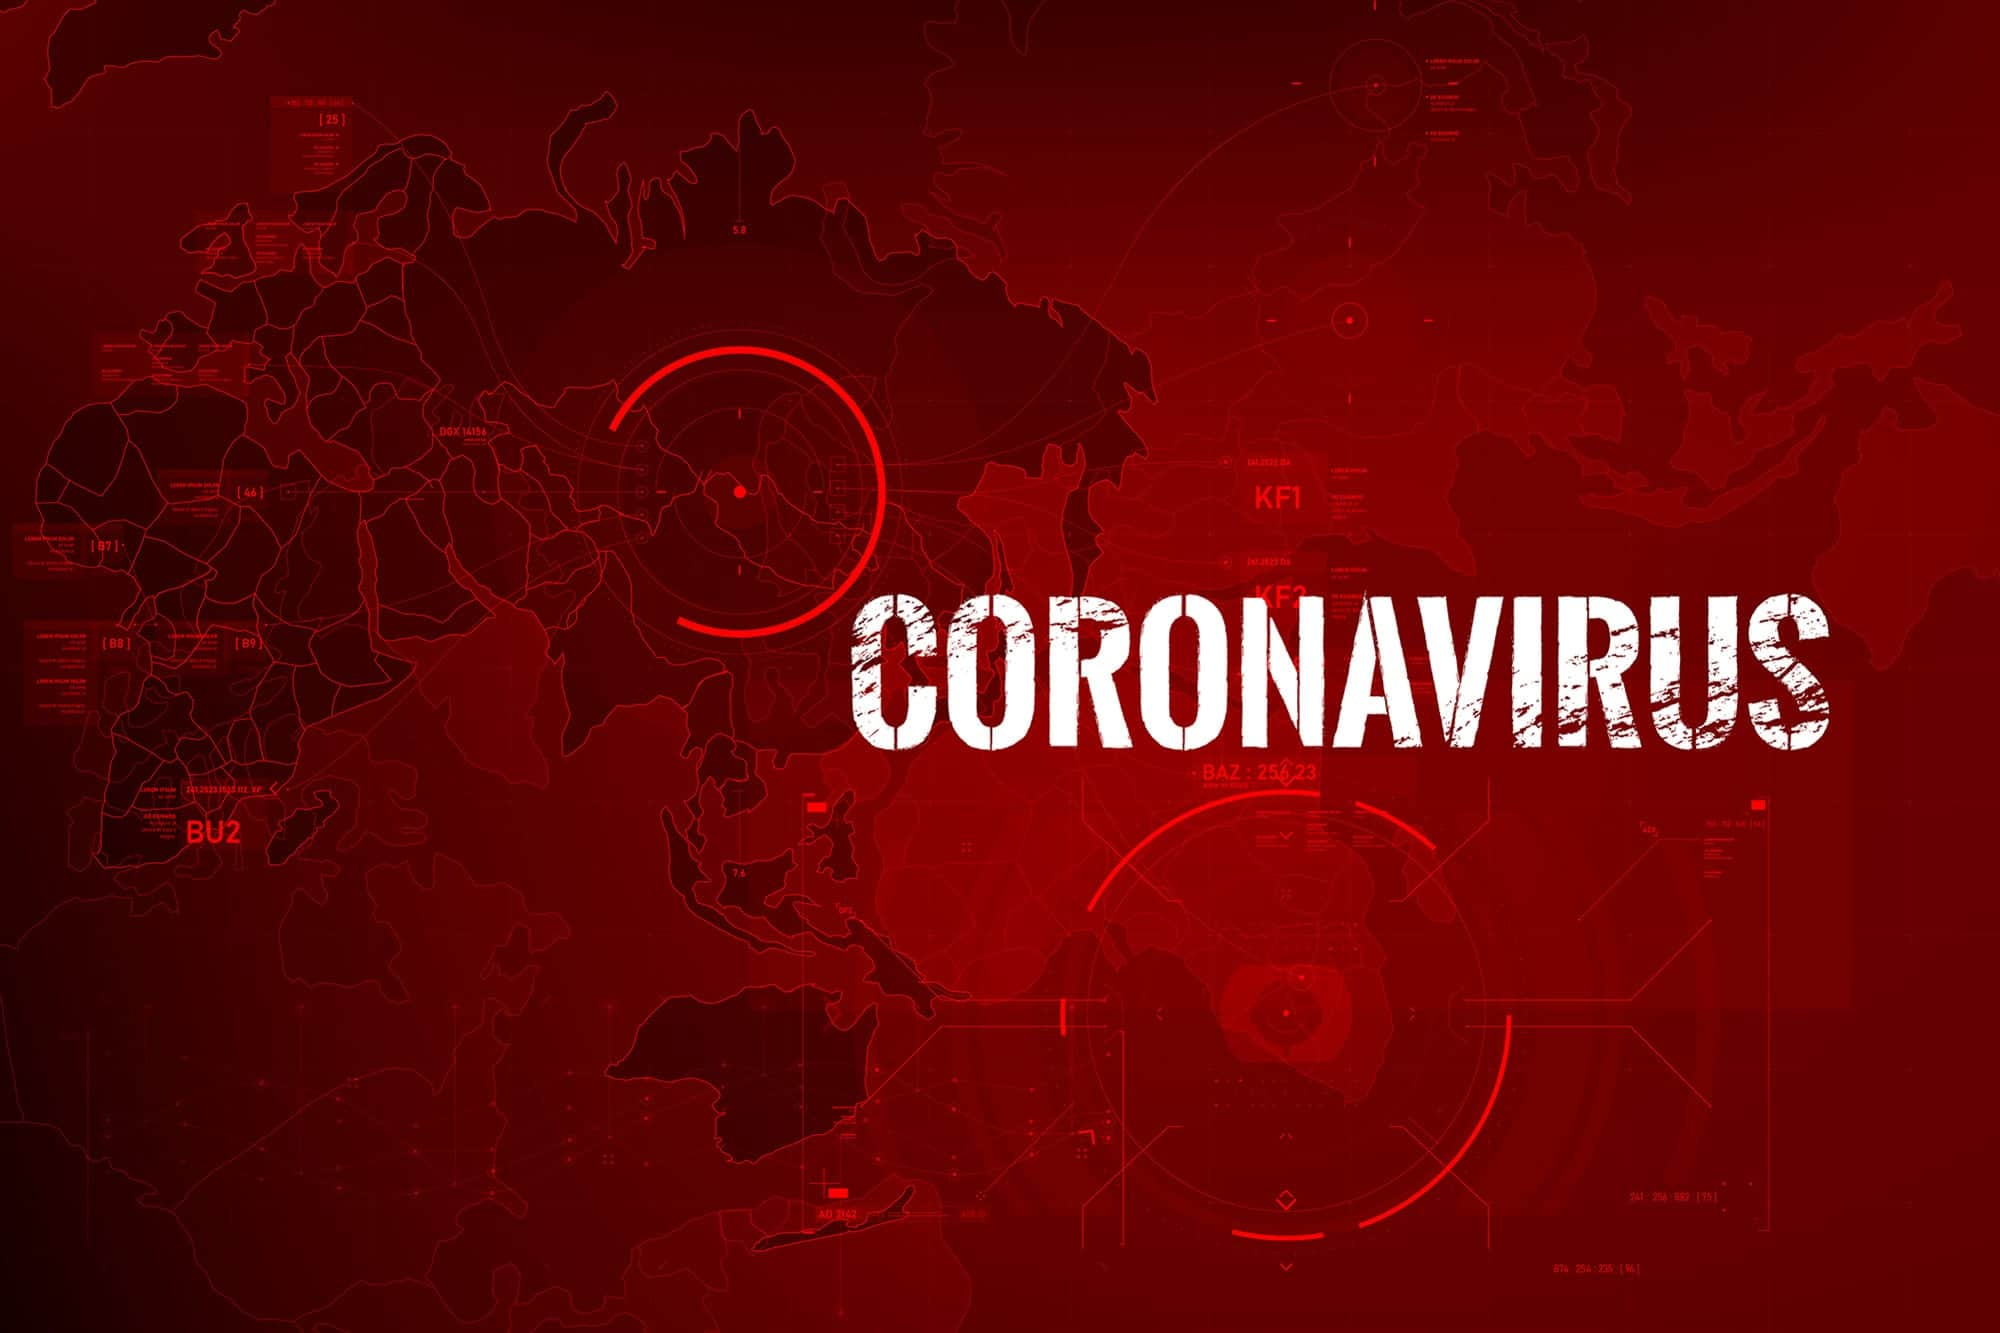 Rt. Revd Manasses Okere, Bishop, Anglican Diocese, Isiukwuato in Abia, has said that the Coronavirus pandemic was a blessing in disguise as it created room for domestic church to thrive. Okere, who was Guest Preacher at the 12th Synod of Anglican Diocese of Awka, said it had united many families by making them spend long […]